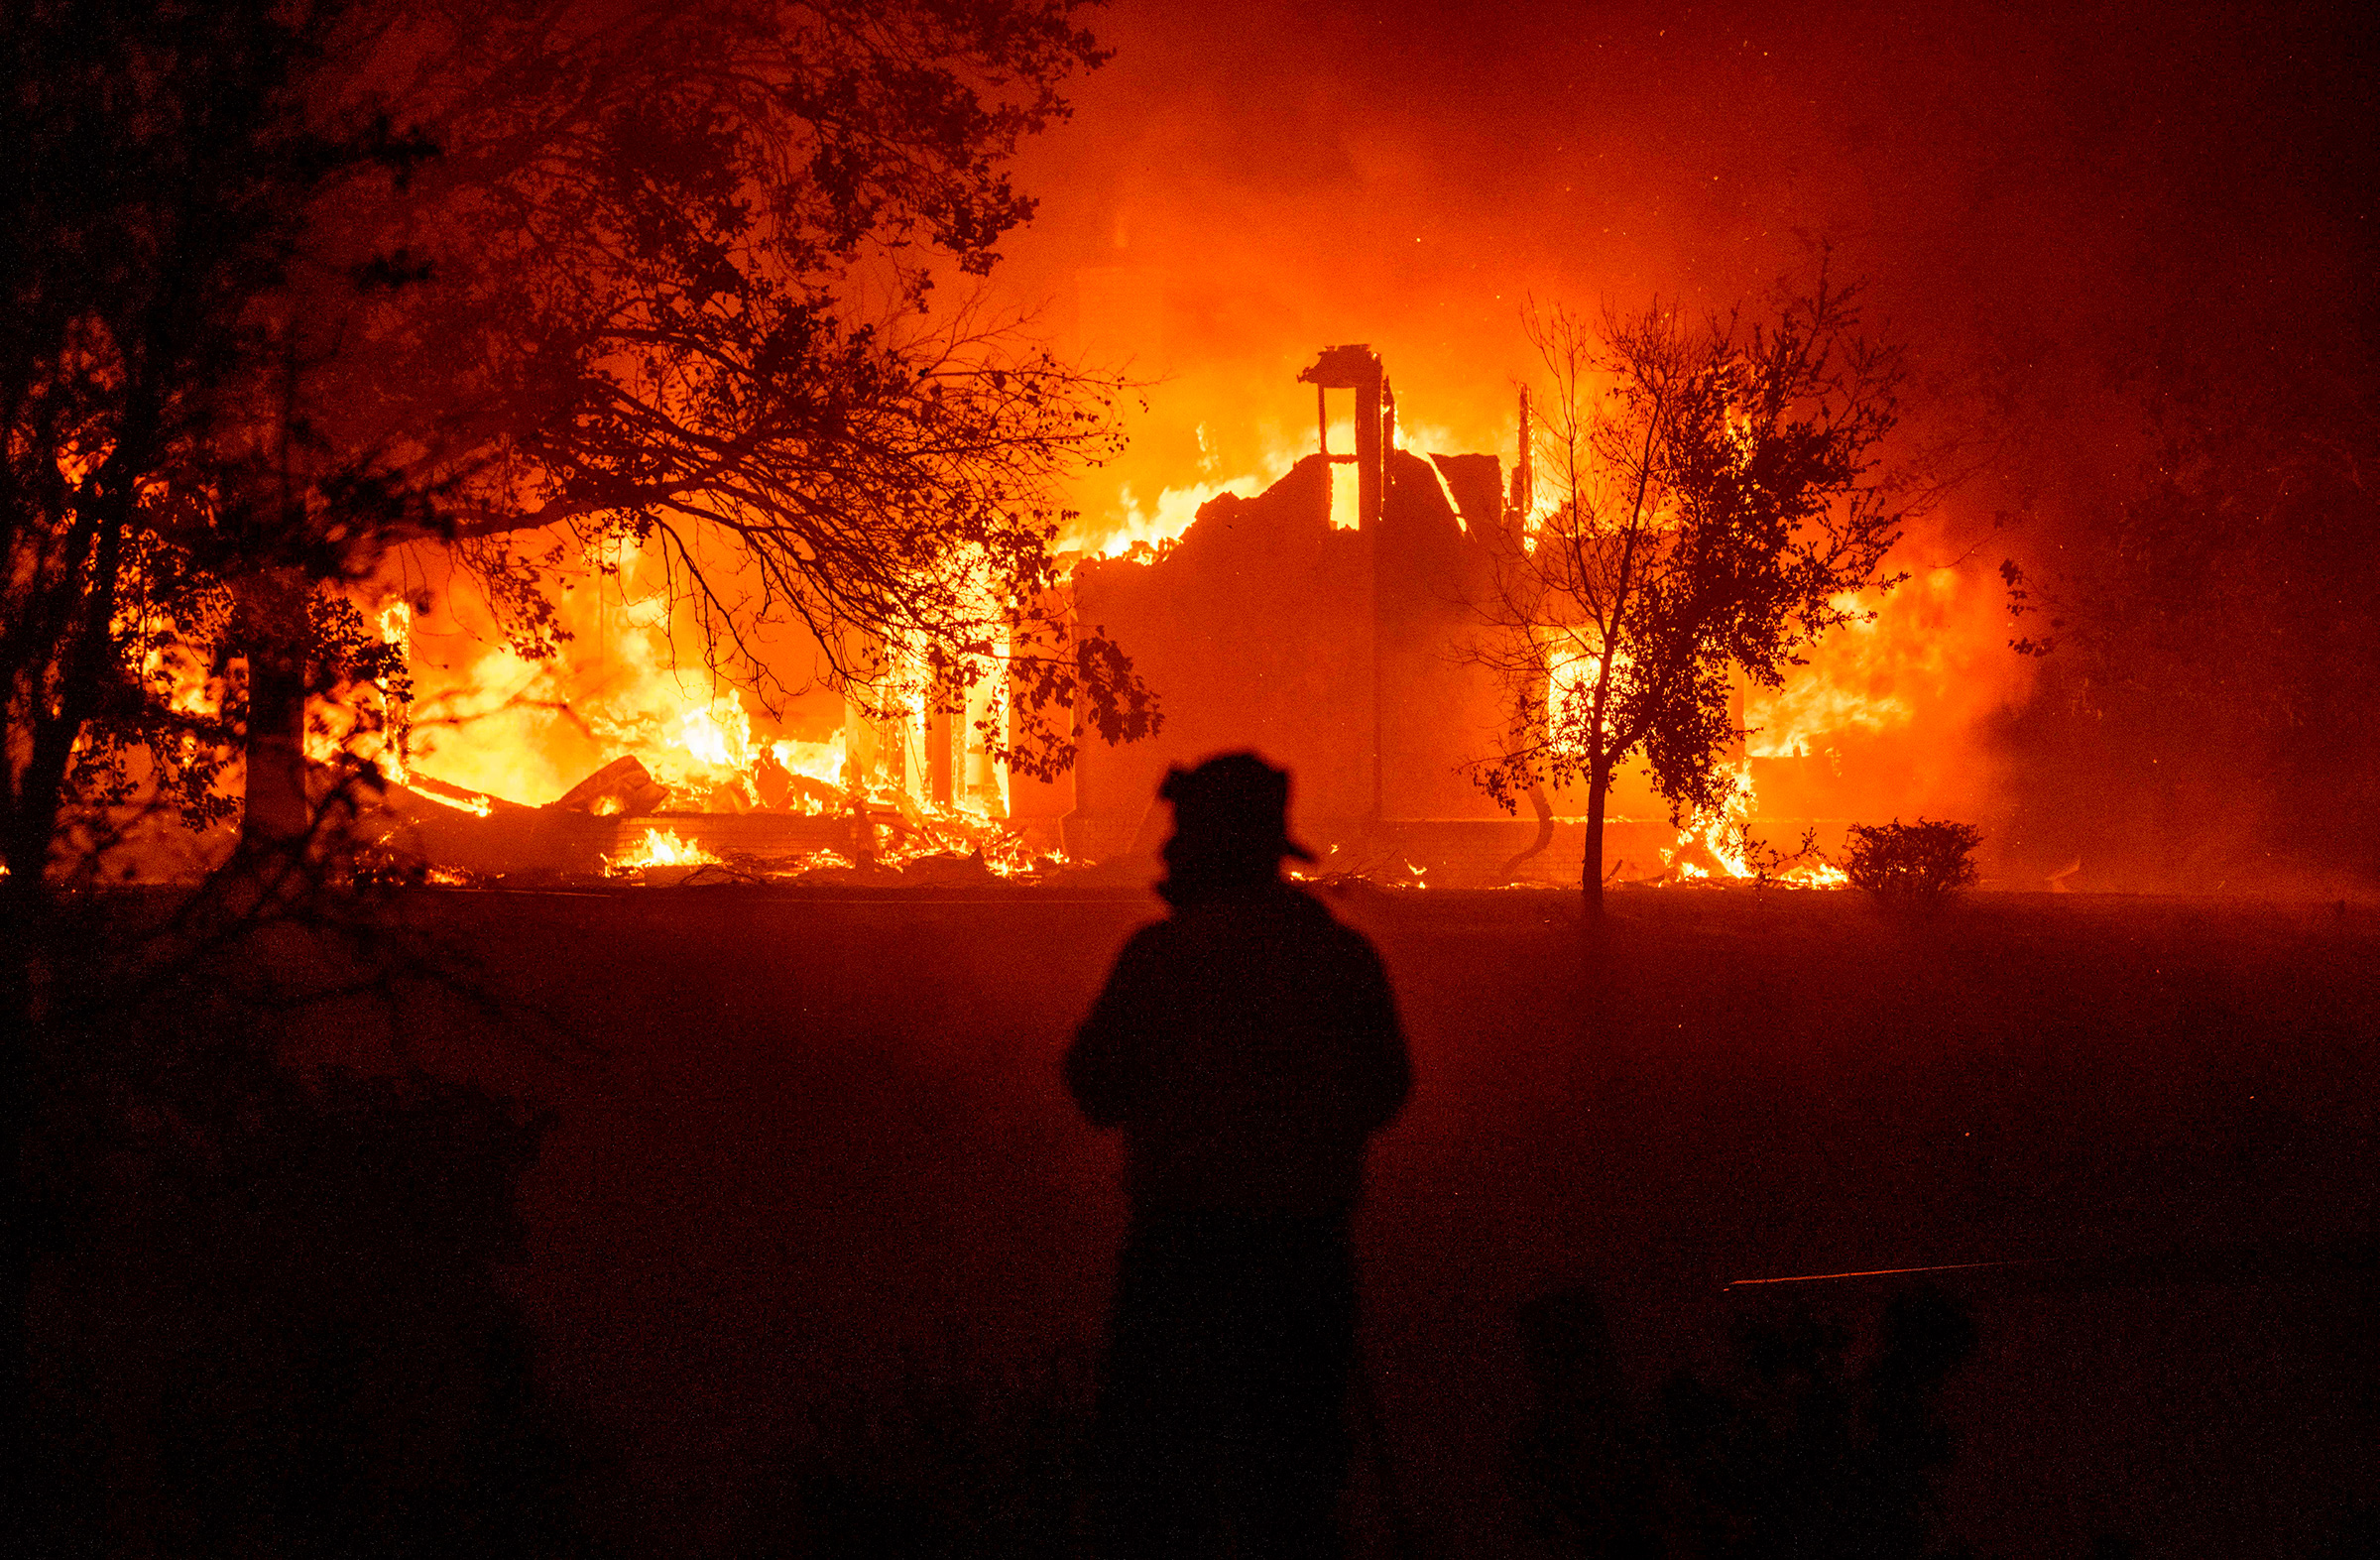 A home burns in Vacaville, CA during the LNU Lightning Complex fire on Aug. 19